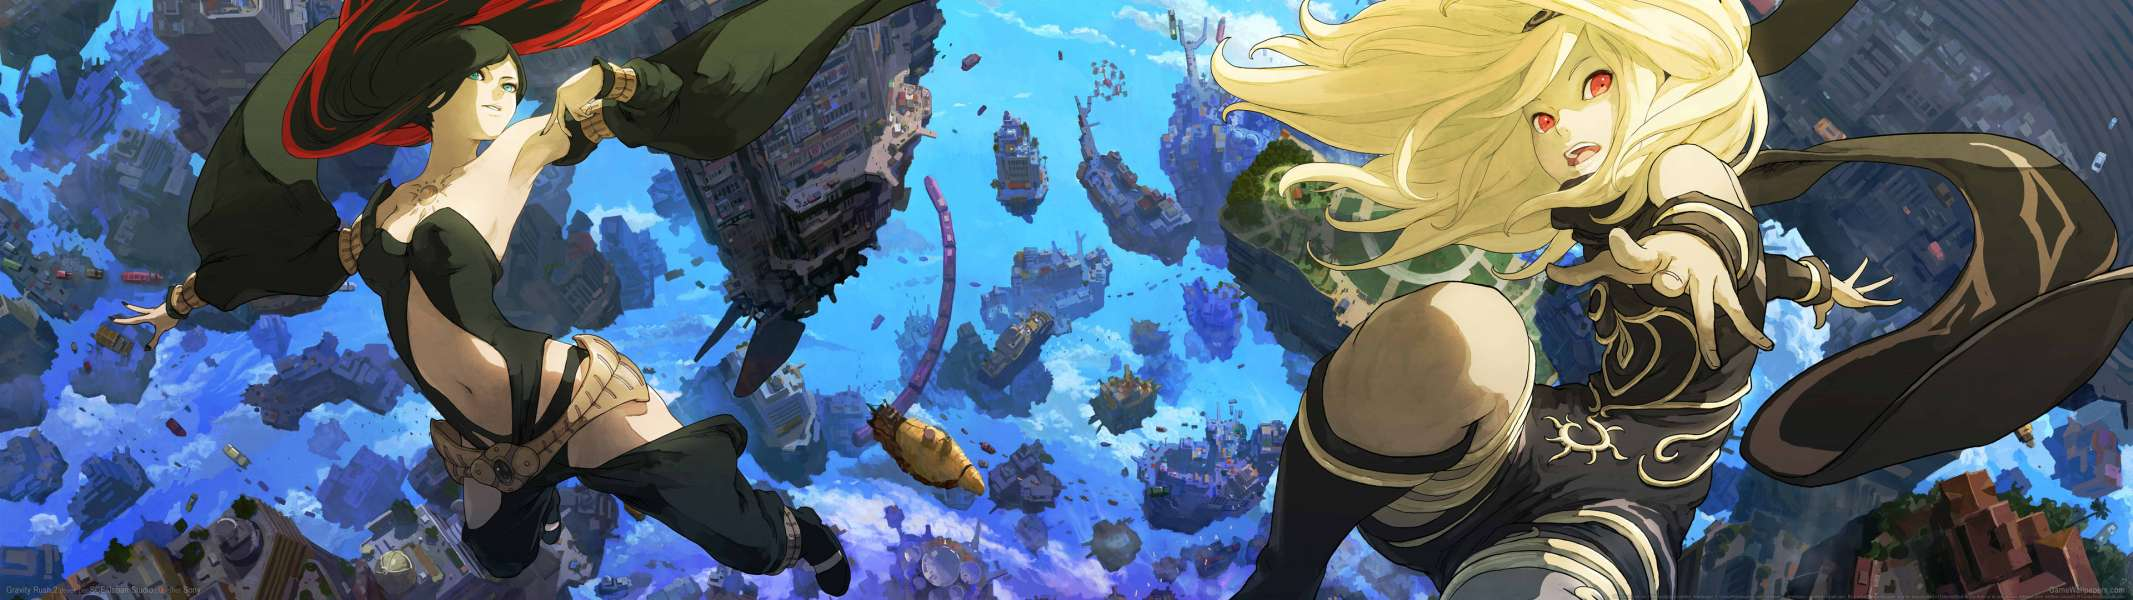 Gravity Rush 2 dual screen fondo de escritorio